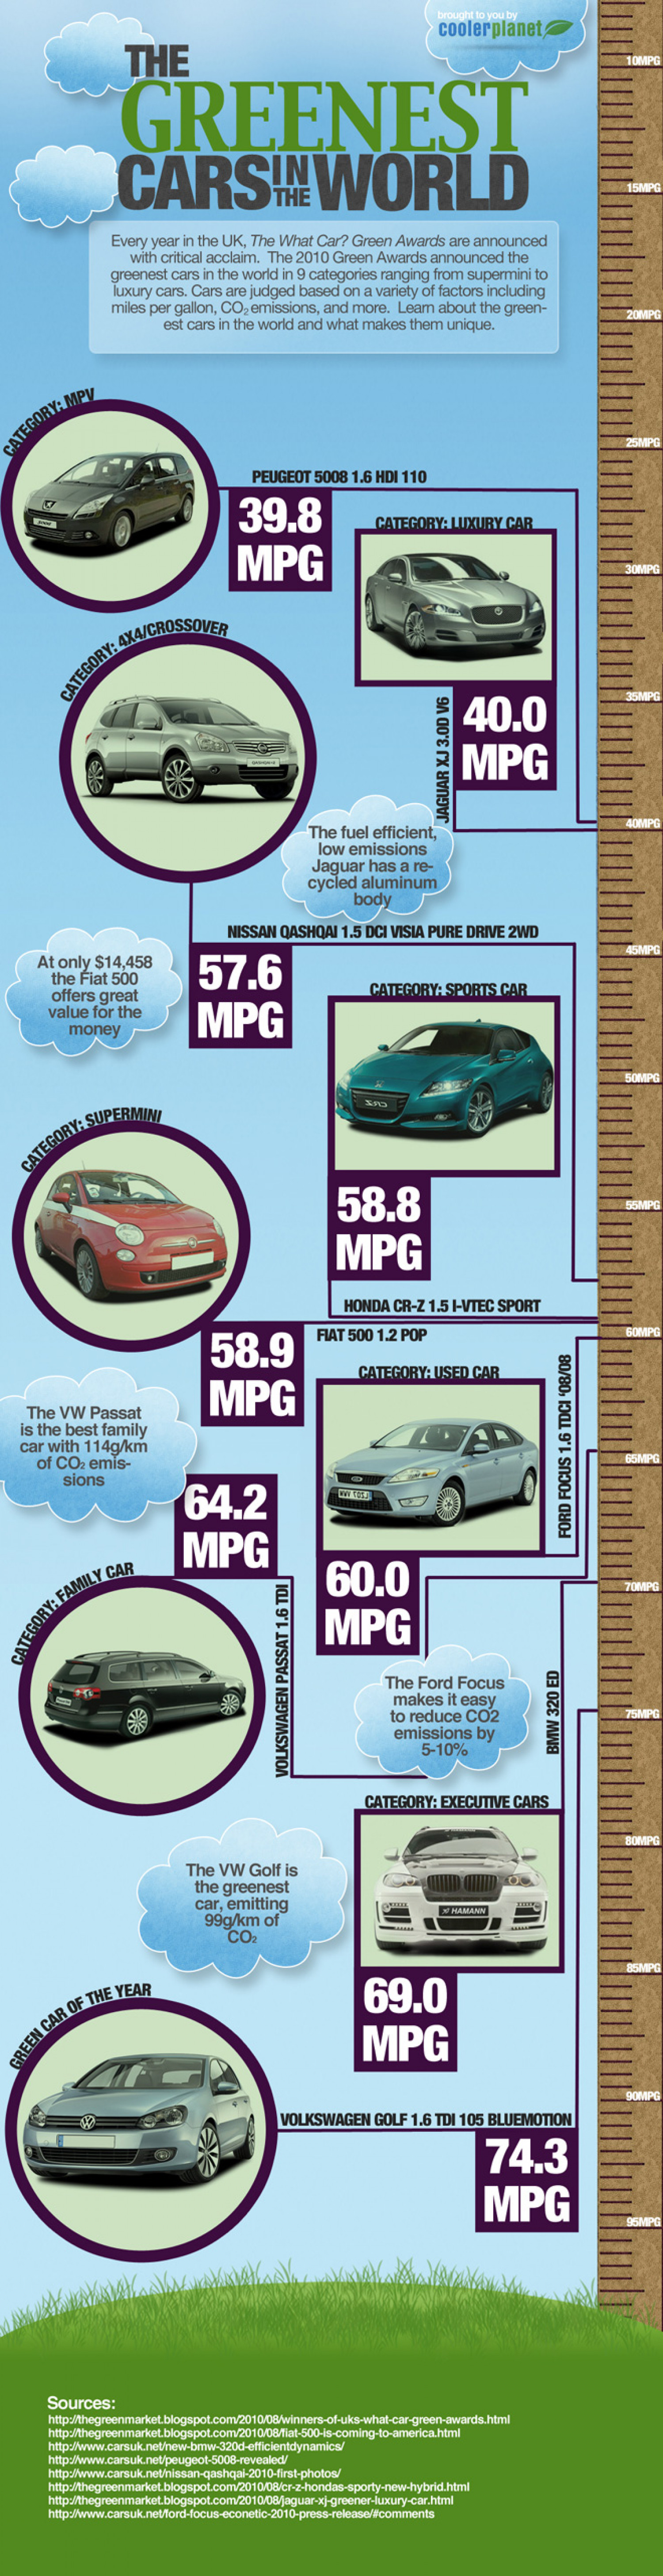 The Greenest Cars In The World Infographic